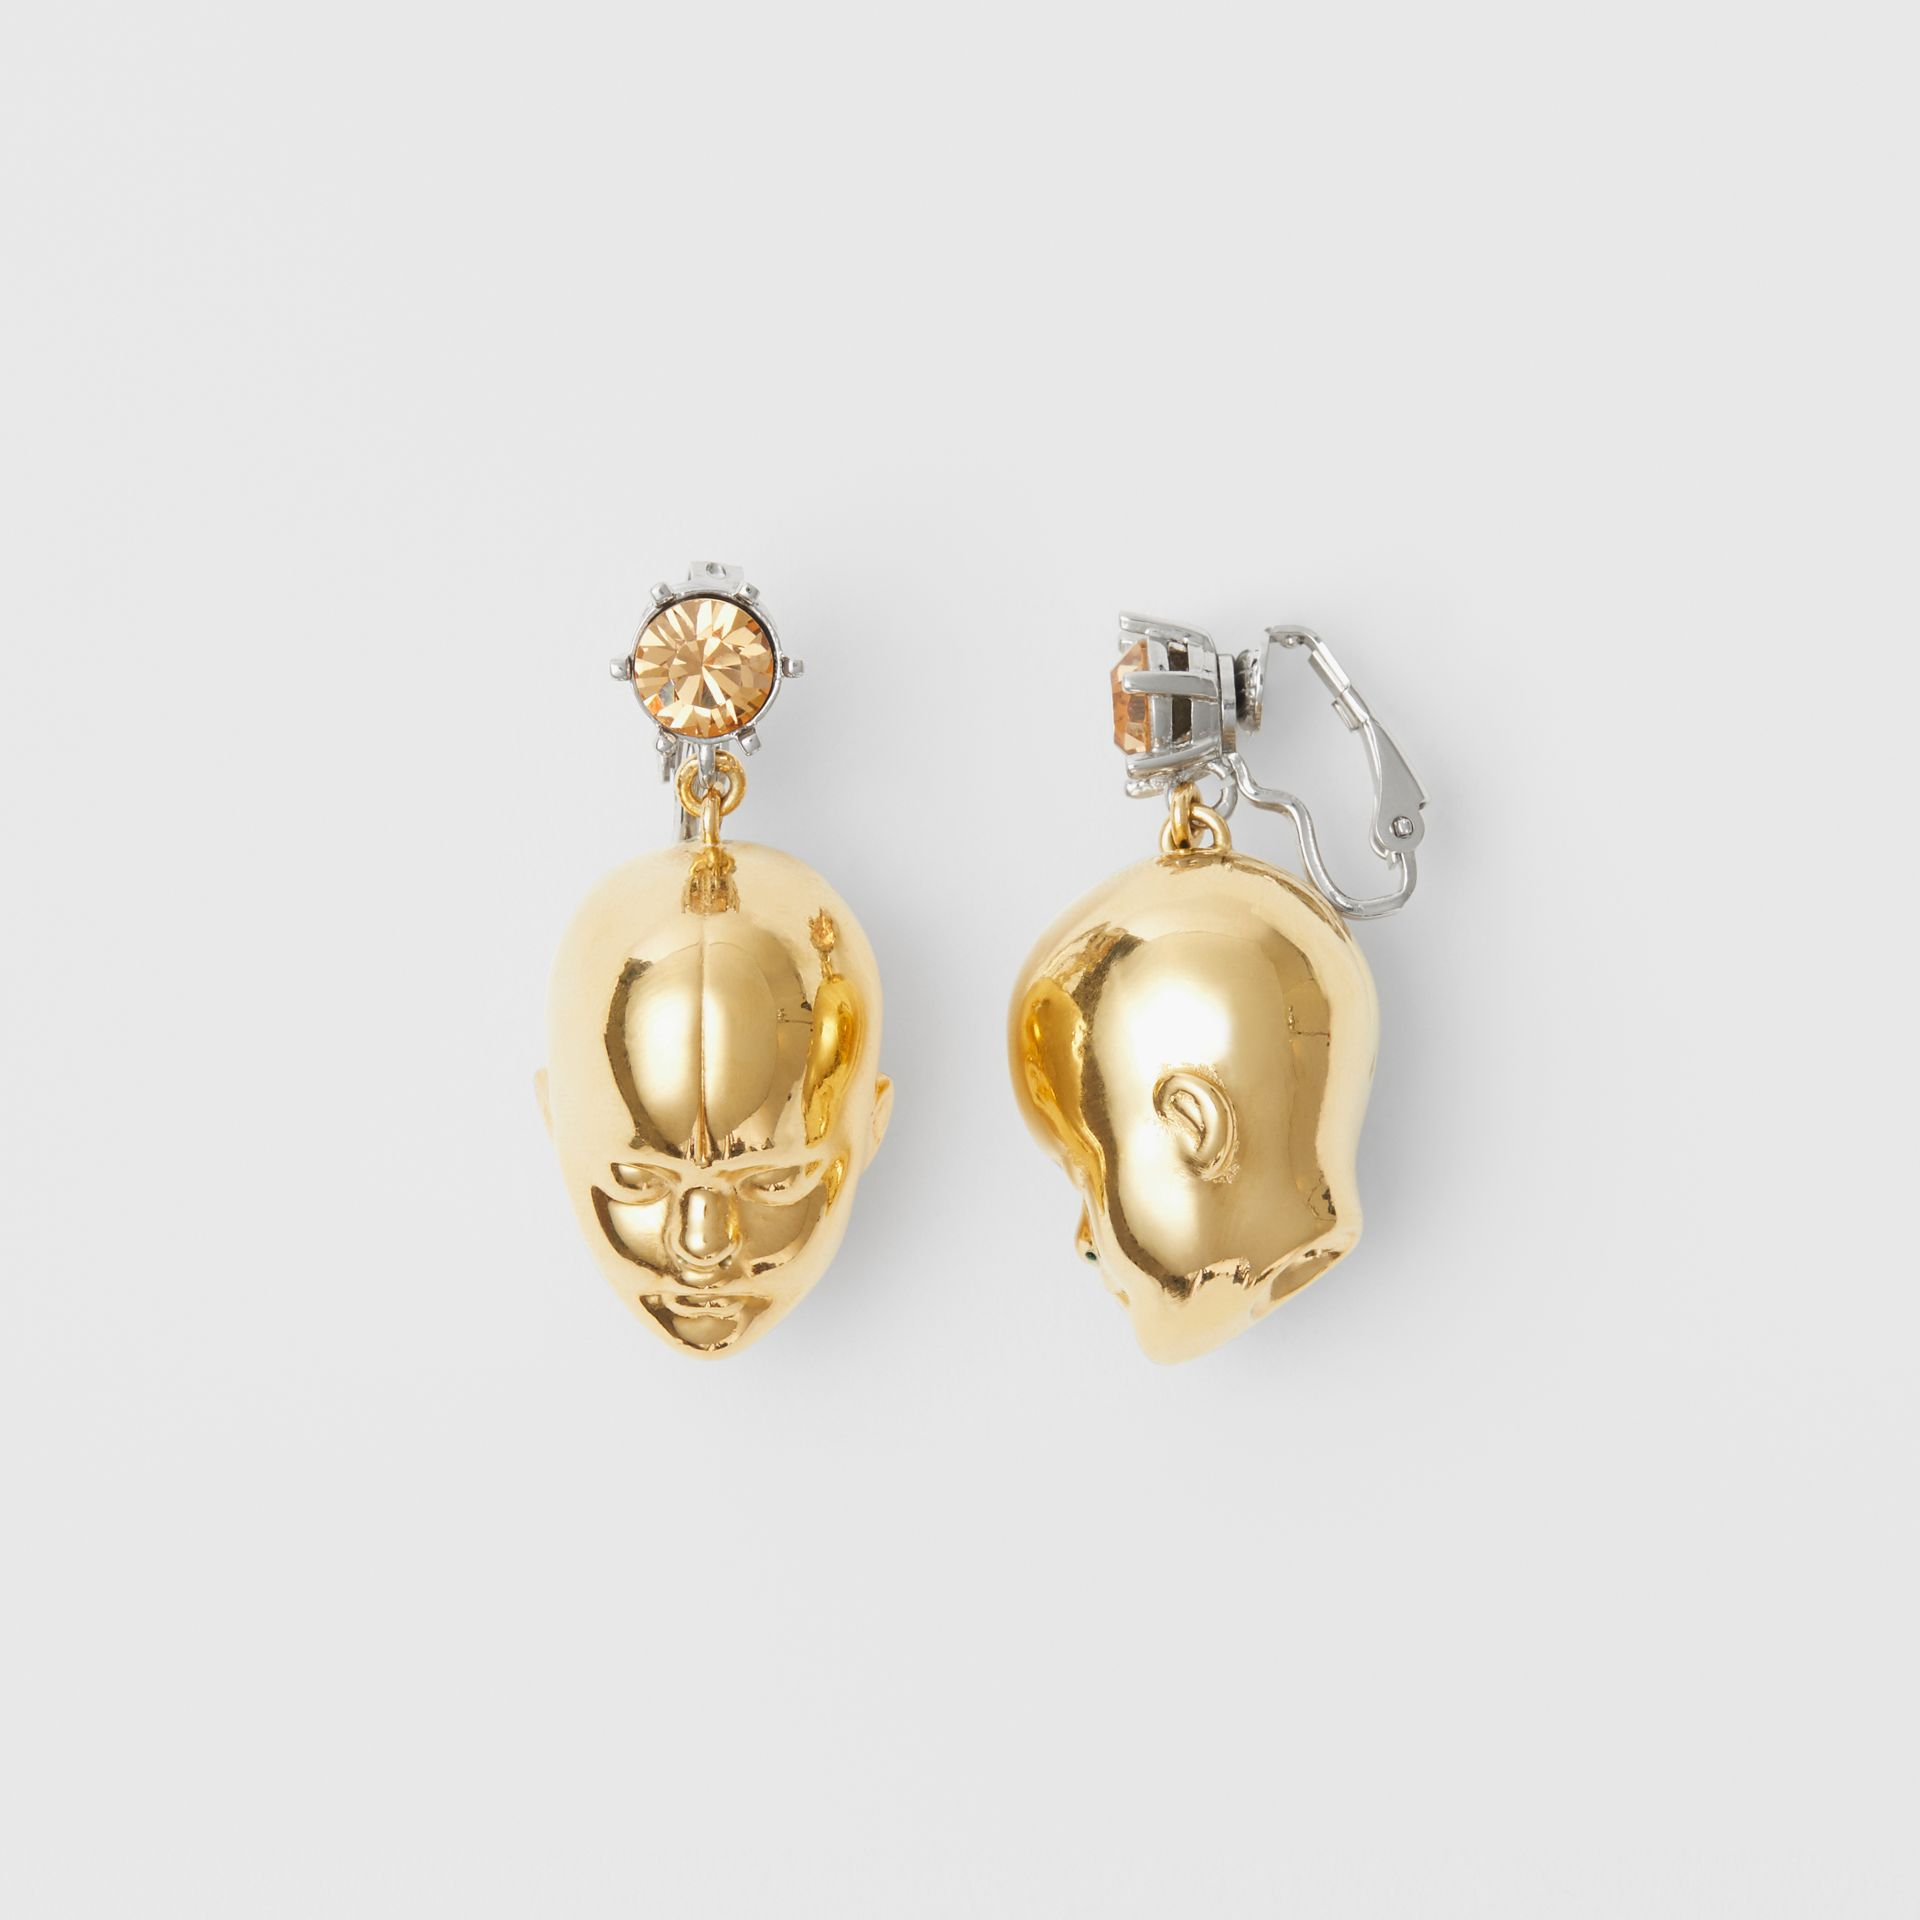 Crystal and Doll's Head Gold-plated Drop Earrings in Light Colorado/light - Women | Burberry Australia - gallery image 2